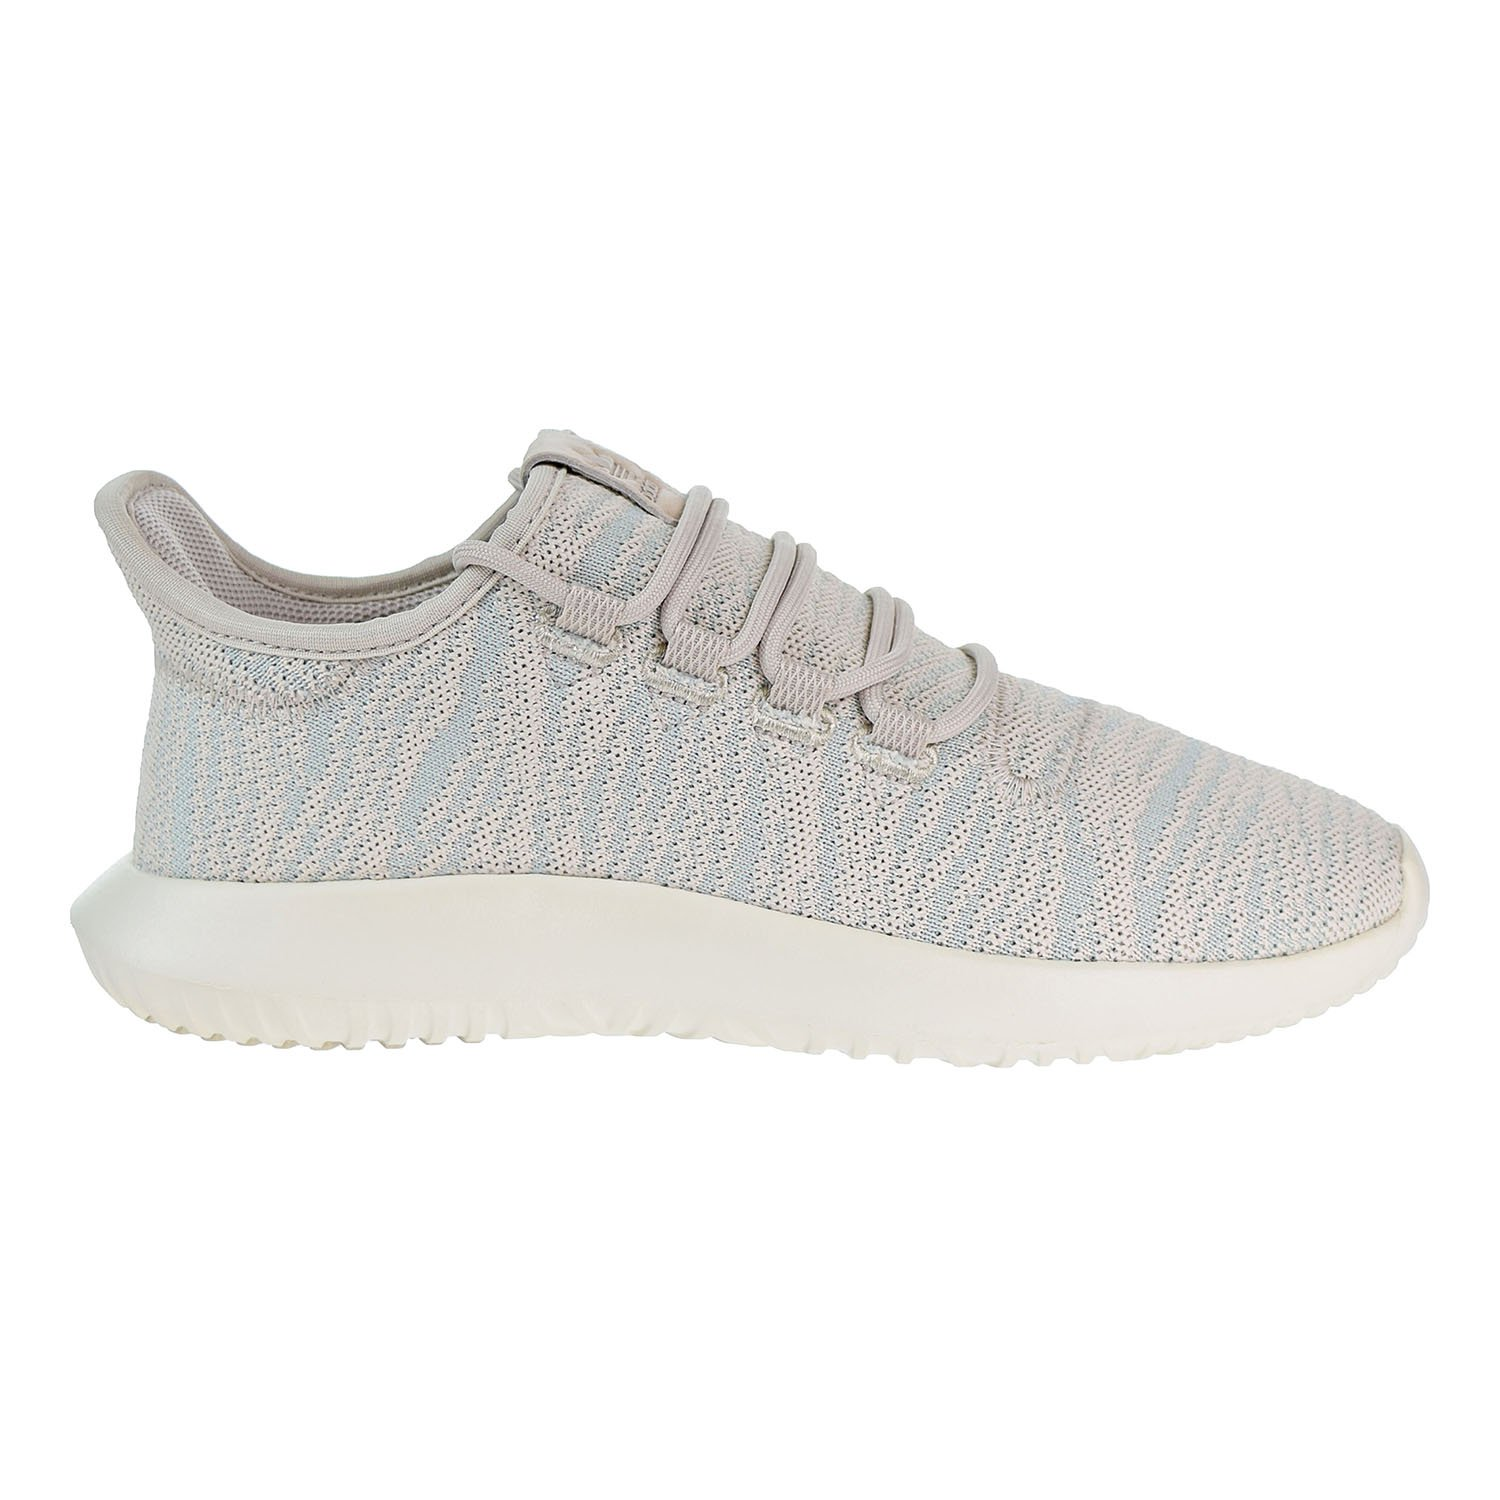 adidas Originals Women's Tubular Shadow W Fashion Sneaker B076FFXGPZ 10.5 B(M) US|Clear Brown/Ash Green/Off White